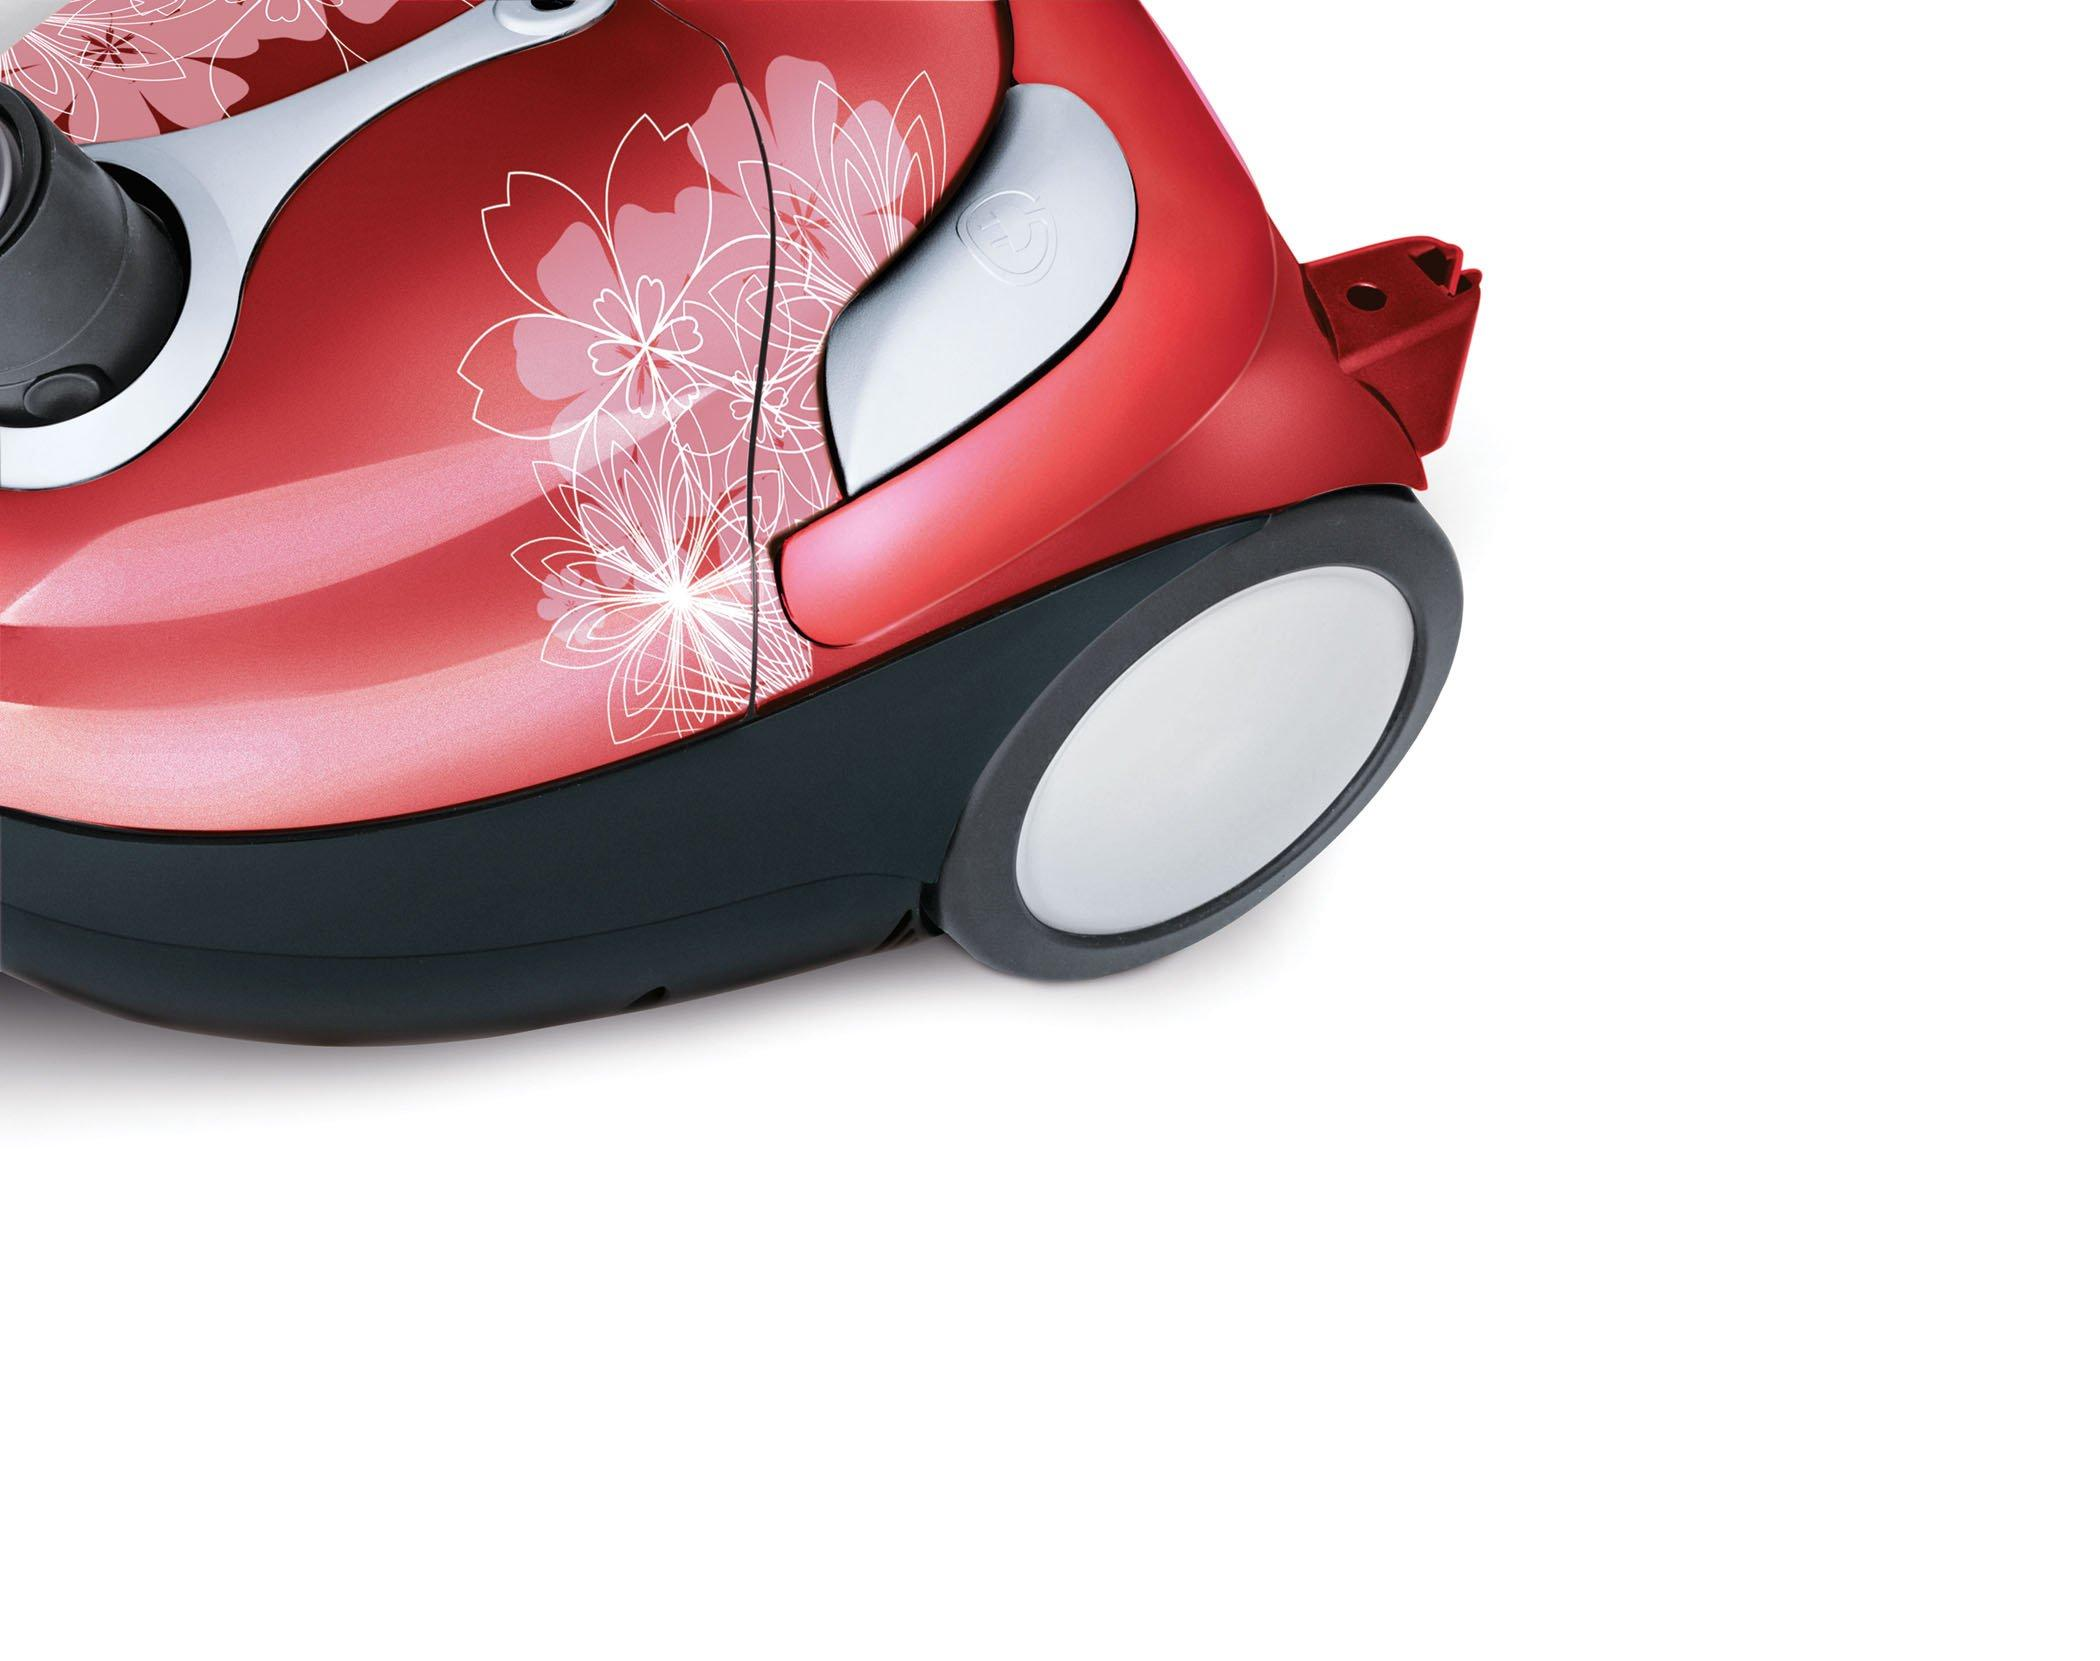 Tattoo Crimson Bouquet Bagged Canister Vacuum4